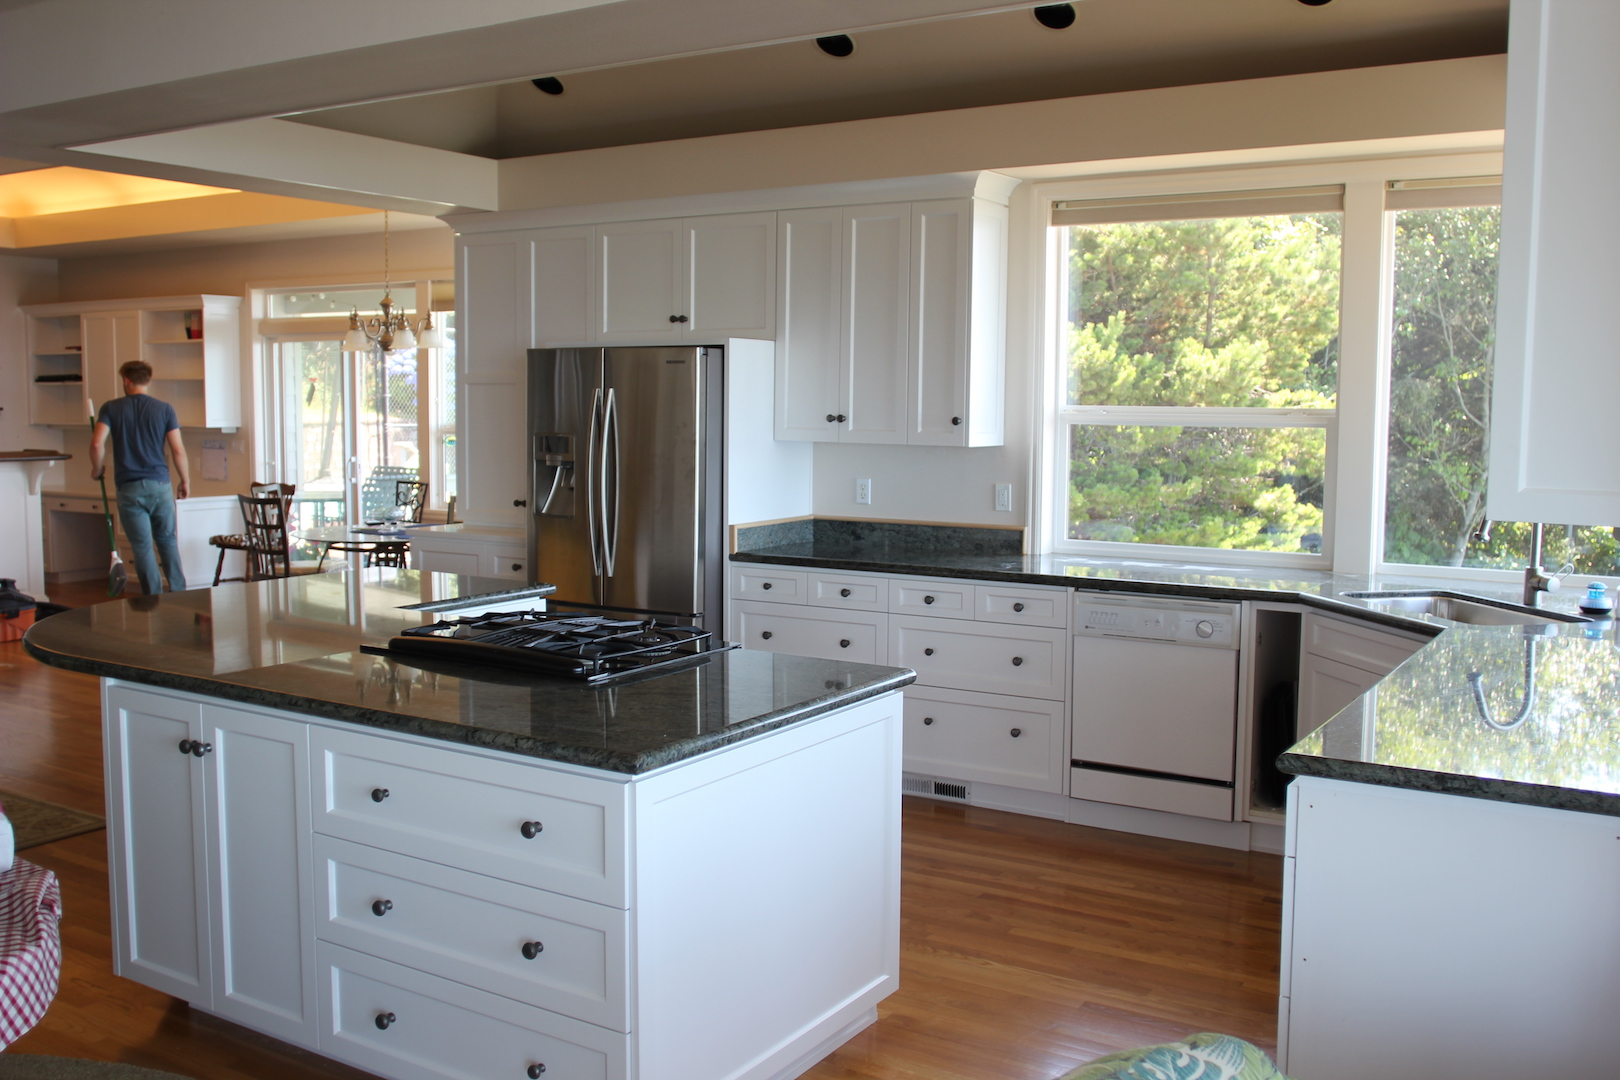 Nw Cabinet Refacing